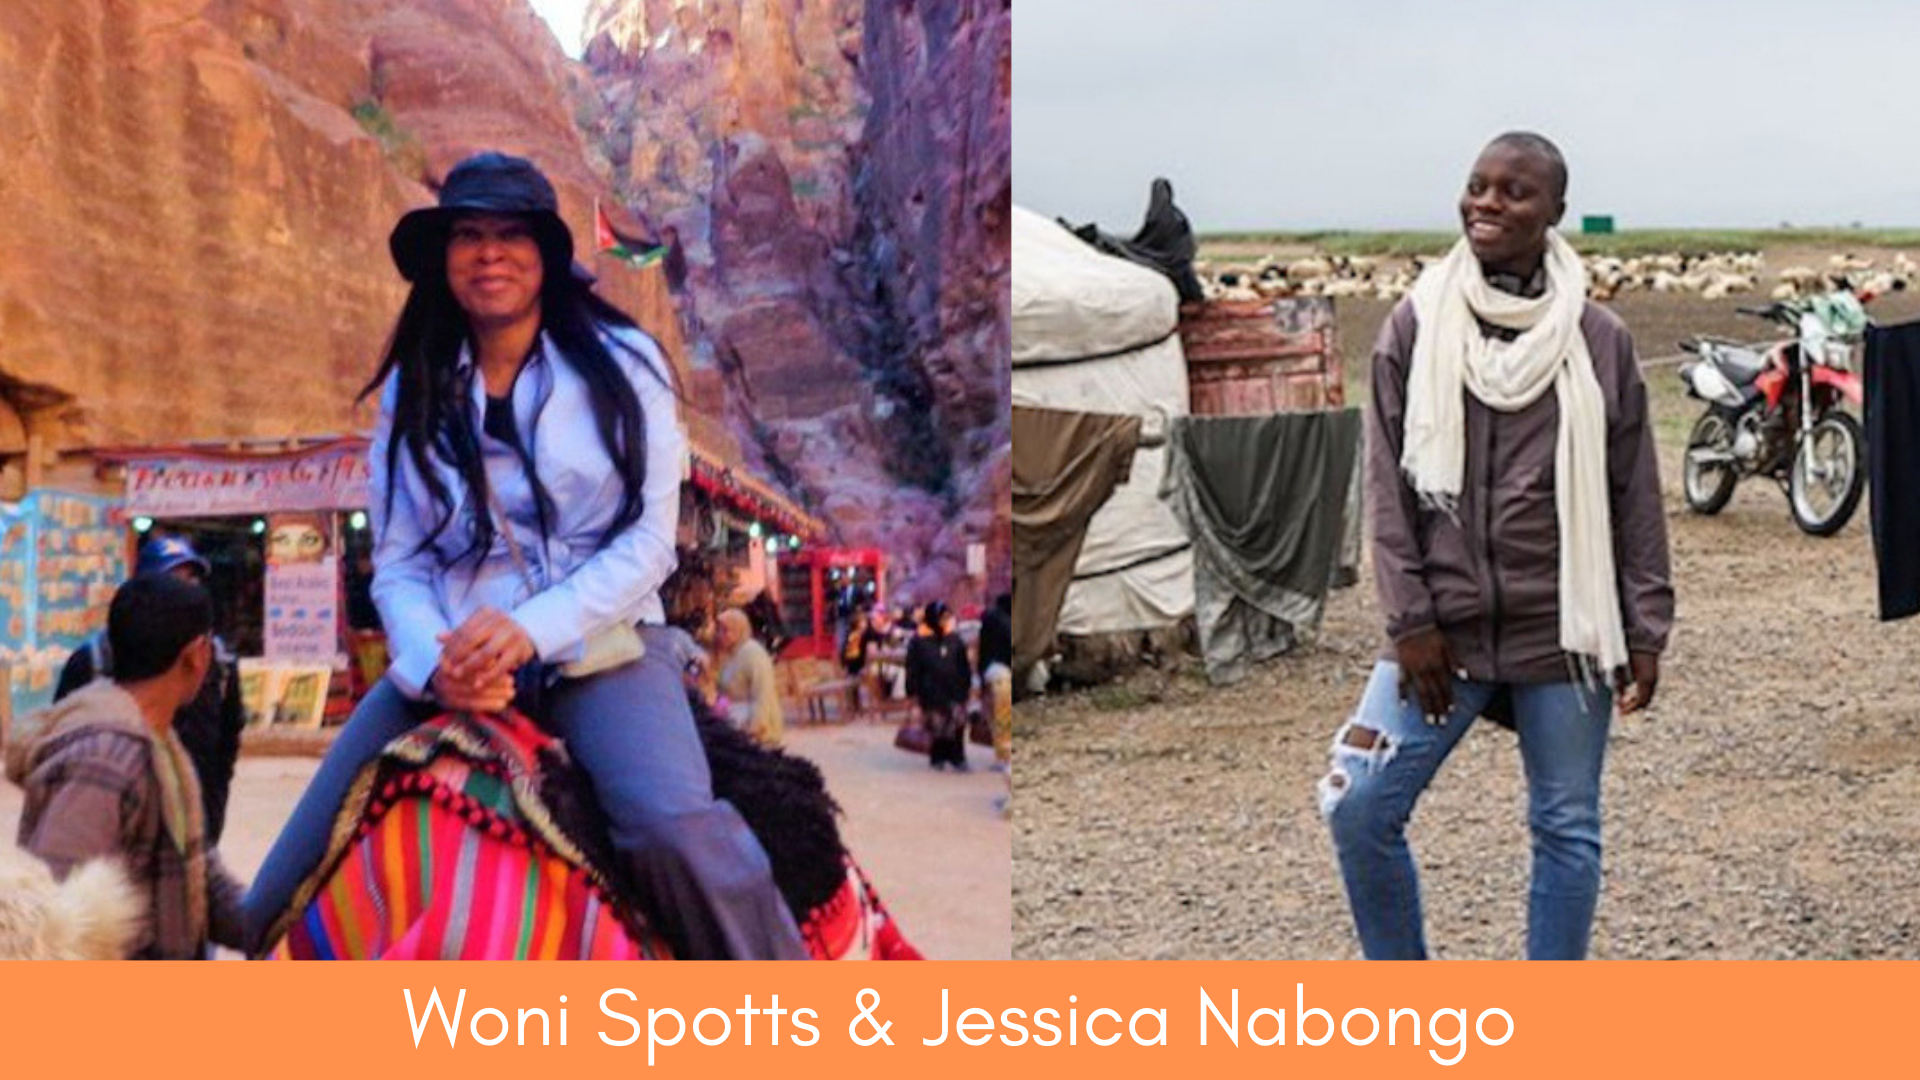 Two Adventure Divas set out to be the first black woman to travel to every country in the world. 55-year-old Woni Spotts did it without sharing it on the internet, while Jessica Nabongo is still very much in the throes of her own adventure but closing in on the finish line (visiting country 189 of 195 as I write this) and sharing it online.